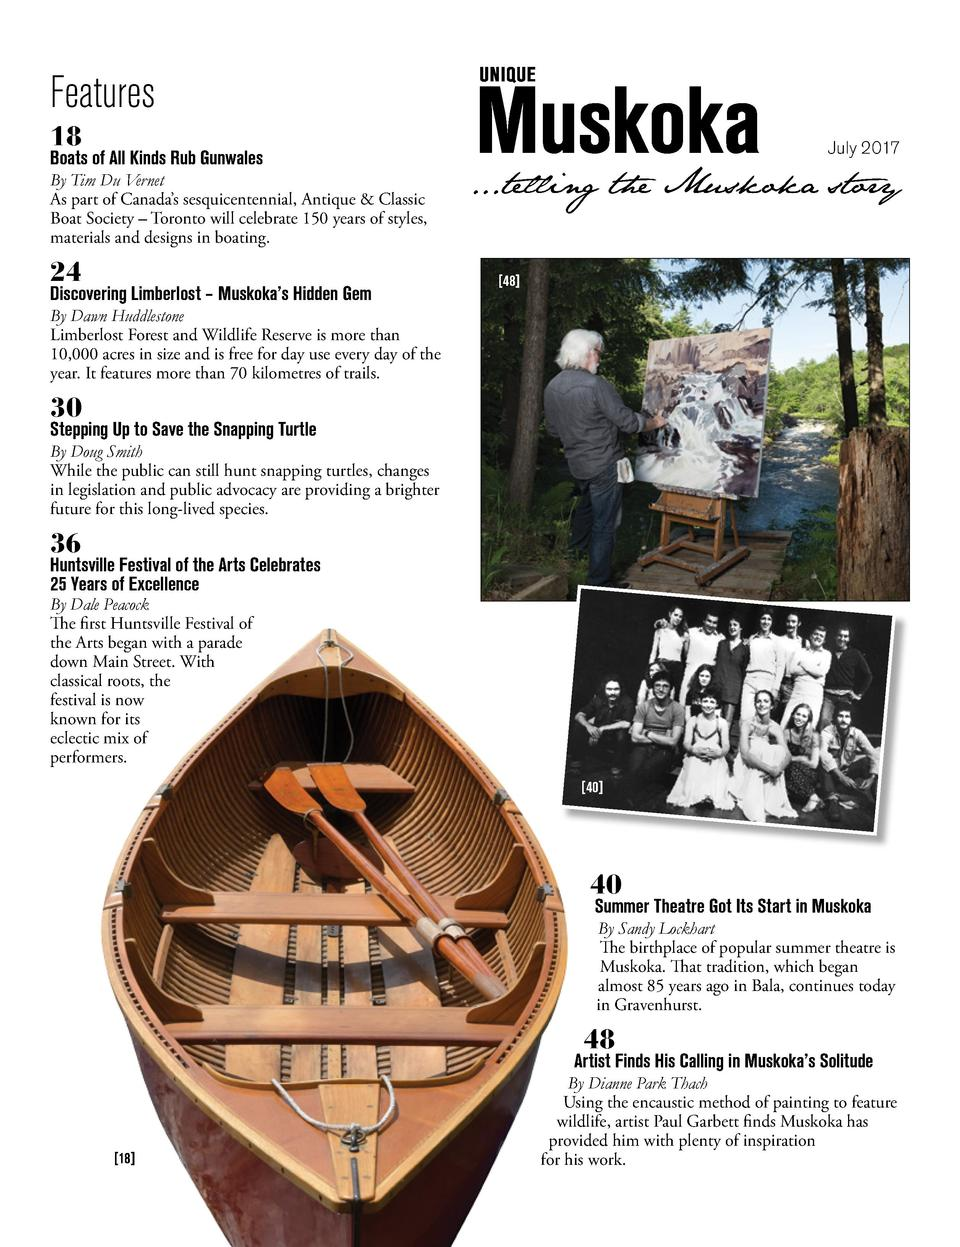 Features 18  Boats of All Kinds Rub Gunwales  By Tim Du Vernet As part of Canada   s sesquicentennial, Antique   Classic B...